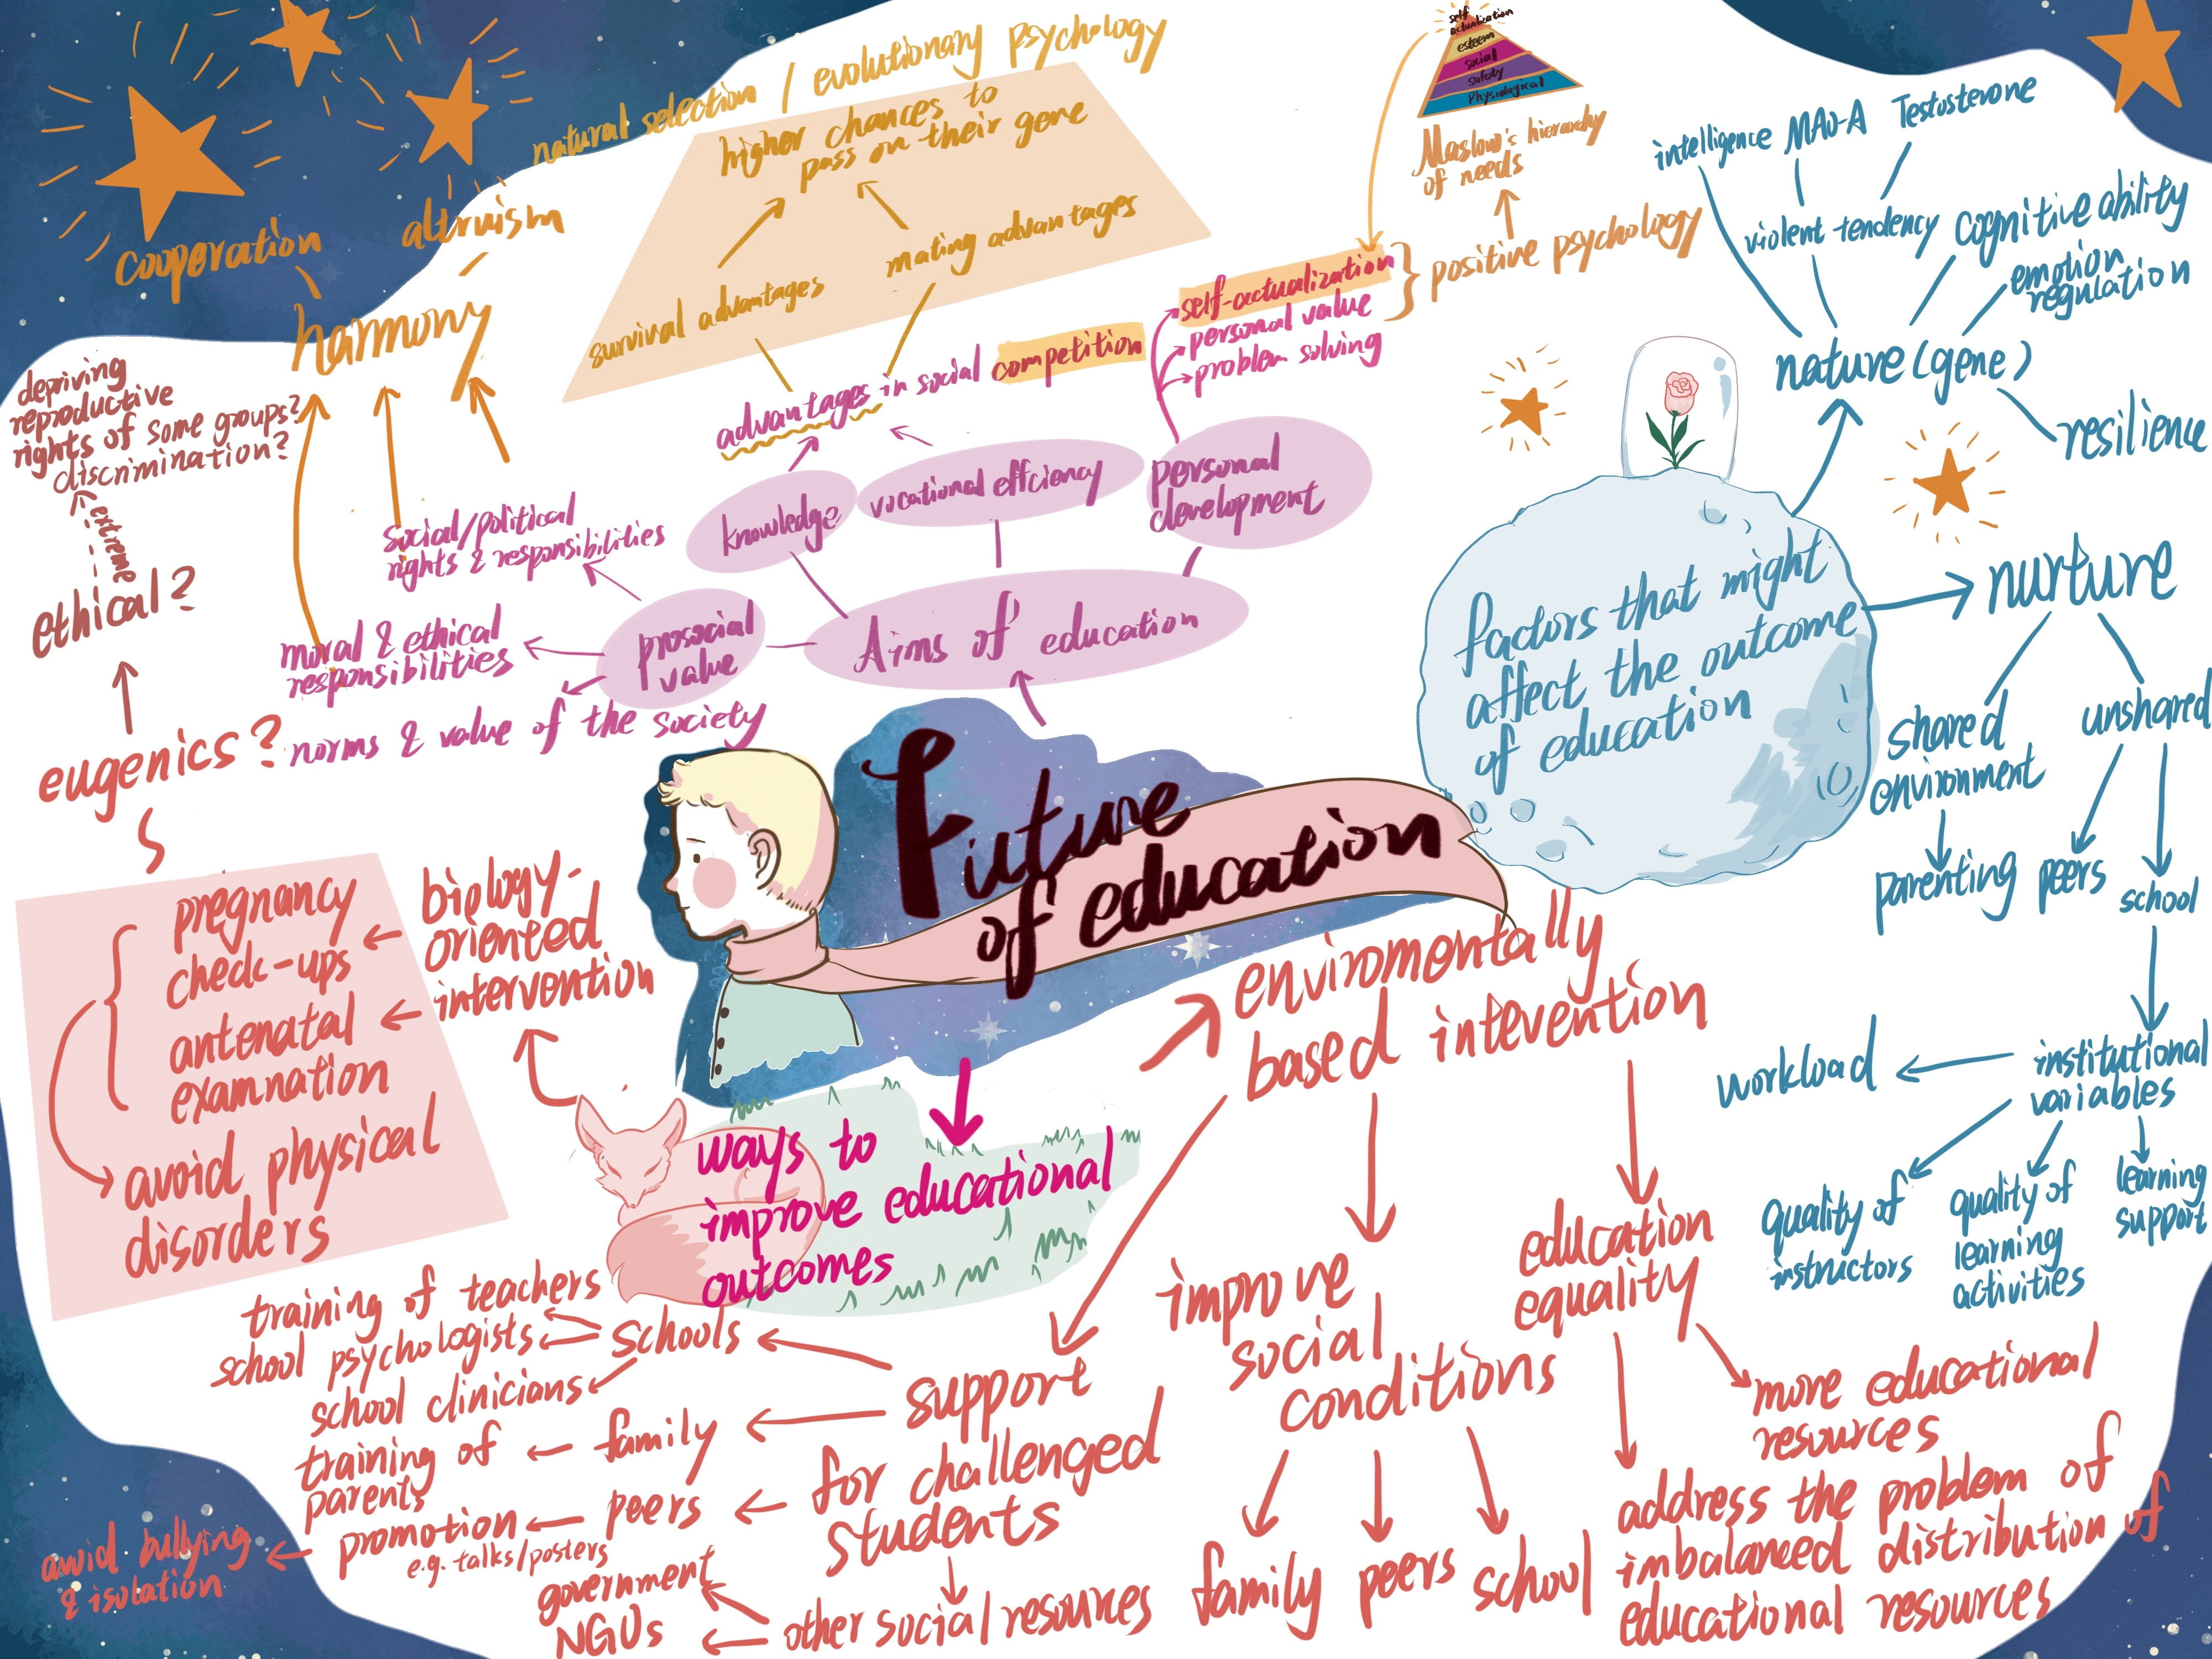 Concept map created by student Ms Emily Chu Hoi Yan for CCST9025 Genetics and Human Nature